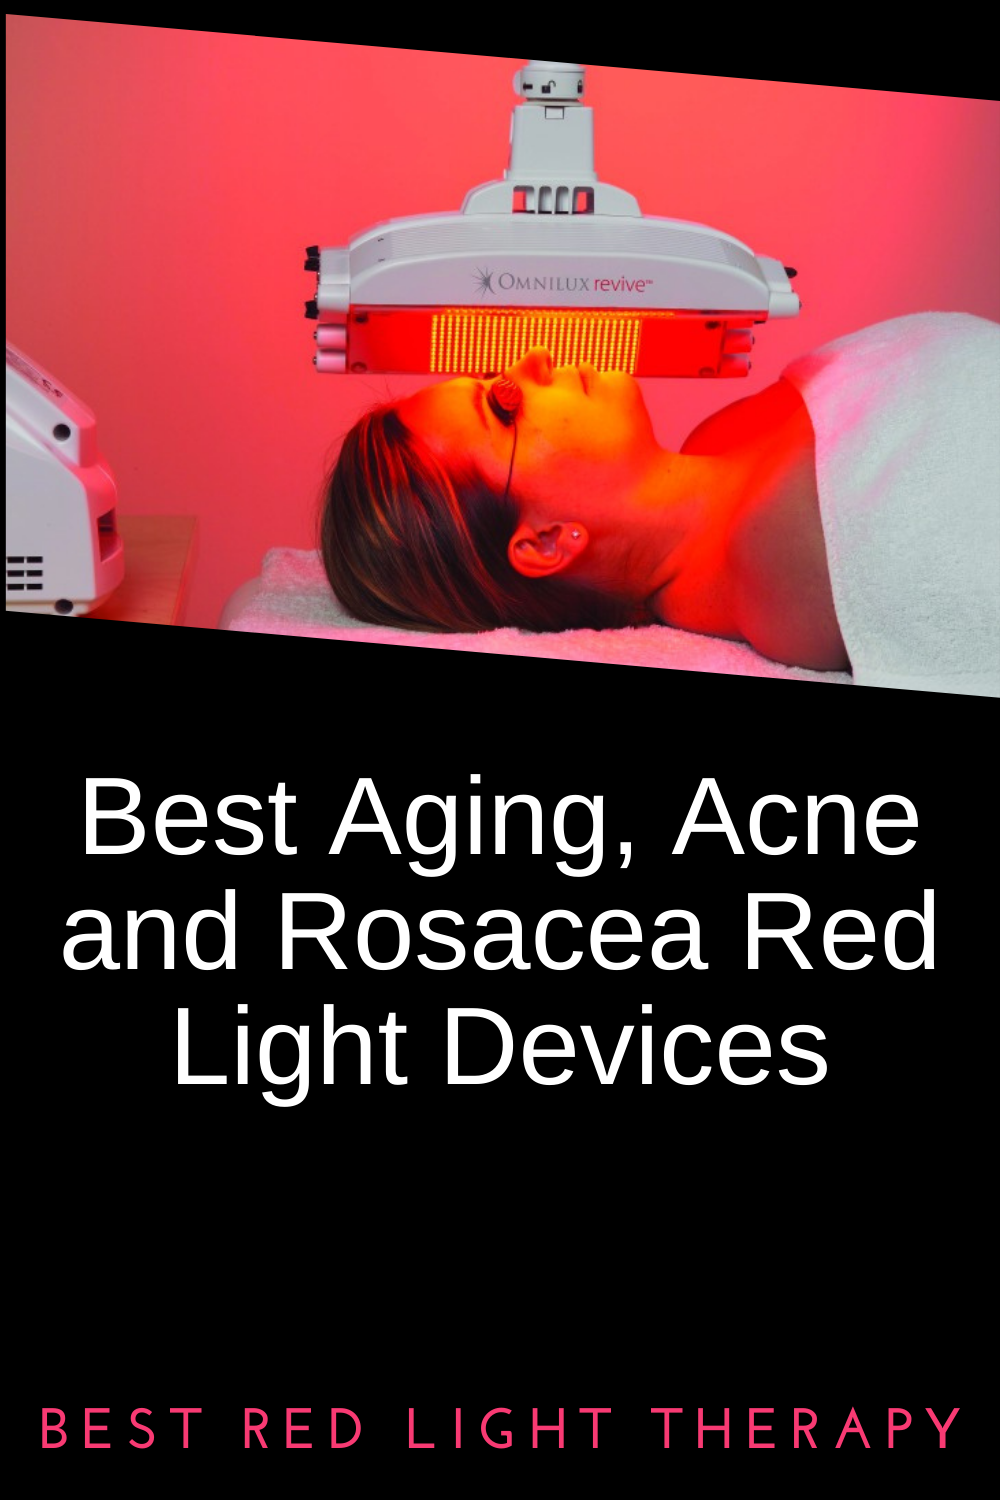 Best aging acne rosacea red light therapy devices